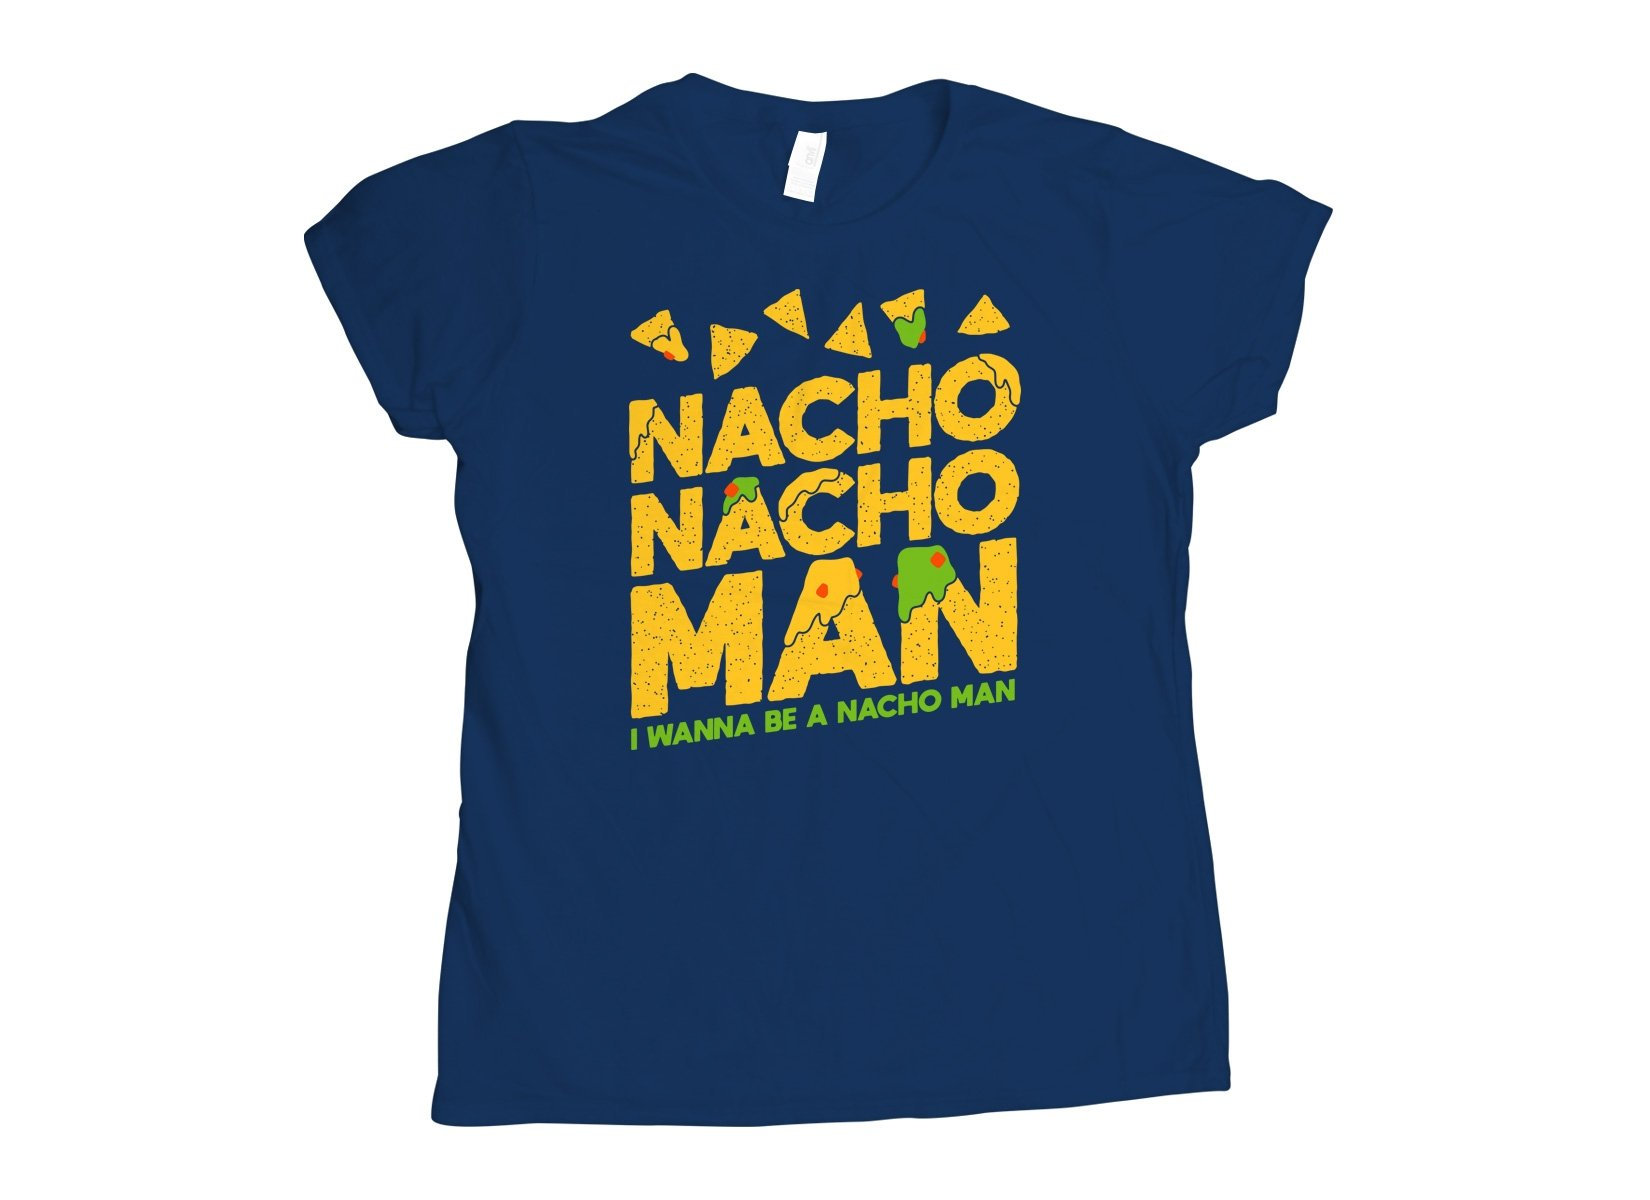 Nacho Nacho Man on Womens T-Shirt